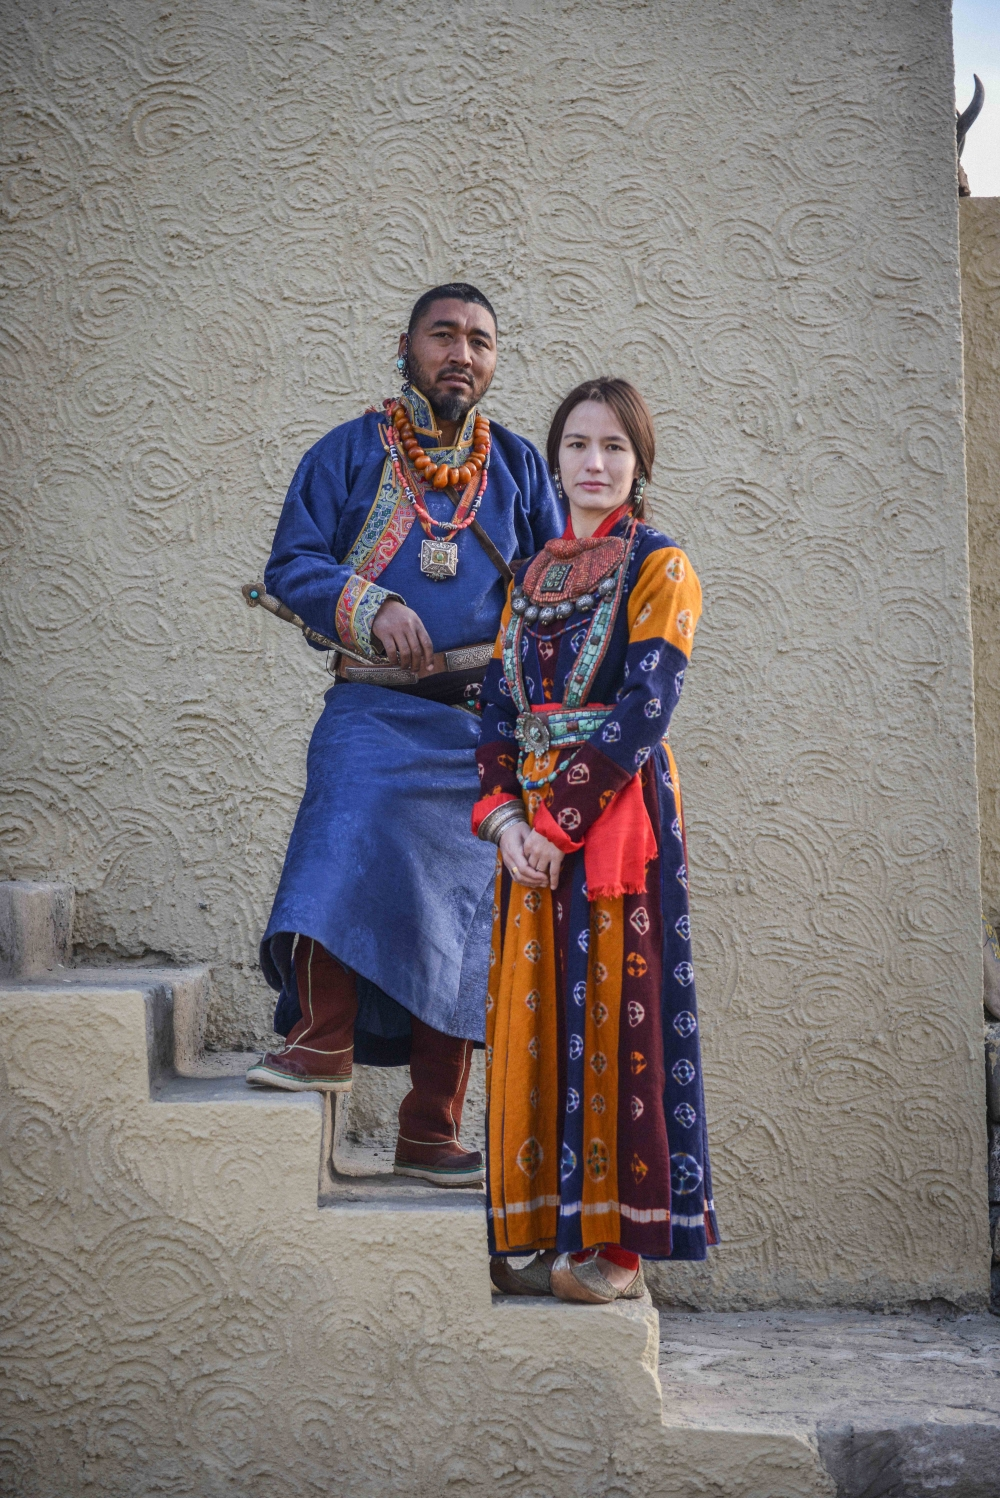 A campaign shoot for the label 'Jigmat Couture' shows two models dressed in contemporary yet traditional Ladakhi dress and jewellery. The man is wearing three necklaces – one amber, one with five dzi strung with coral stones, and a silver filigree worked amulet (gau) hung from a silk fabric. He wears a silver and turquoise earring, supported by a loop around his ear. A leather belt decorated with silver worked pieces placed at intervals; the dagger inserted into it has a silver hilt with a single turquoise stone. The woman is wearing a large gorget, a stiff collar piece (skebug), made from a piece of padded red cloth onto which a central silver and gold-plated amulet is stitched, surrounded by lines of coral, with a fringe of seven silver amulets. She is wearing turquoise and silver earrings. Around her waist is a turquoise and coral belt. On her right hand she is wearing a silver bracelet embossed with Buddhist and geometric patterns.   (Photographer: Bablu and Sonny Singh, 2017; Courtesy: Jigmat Couture.)